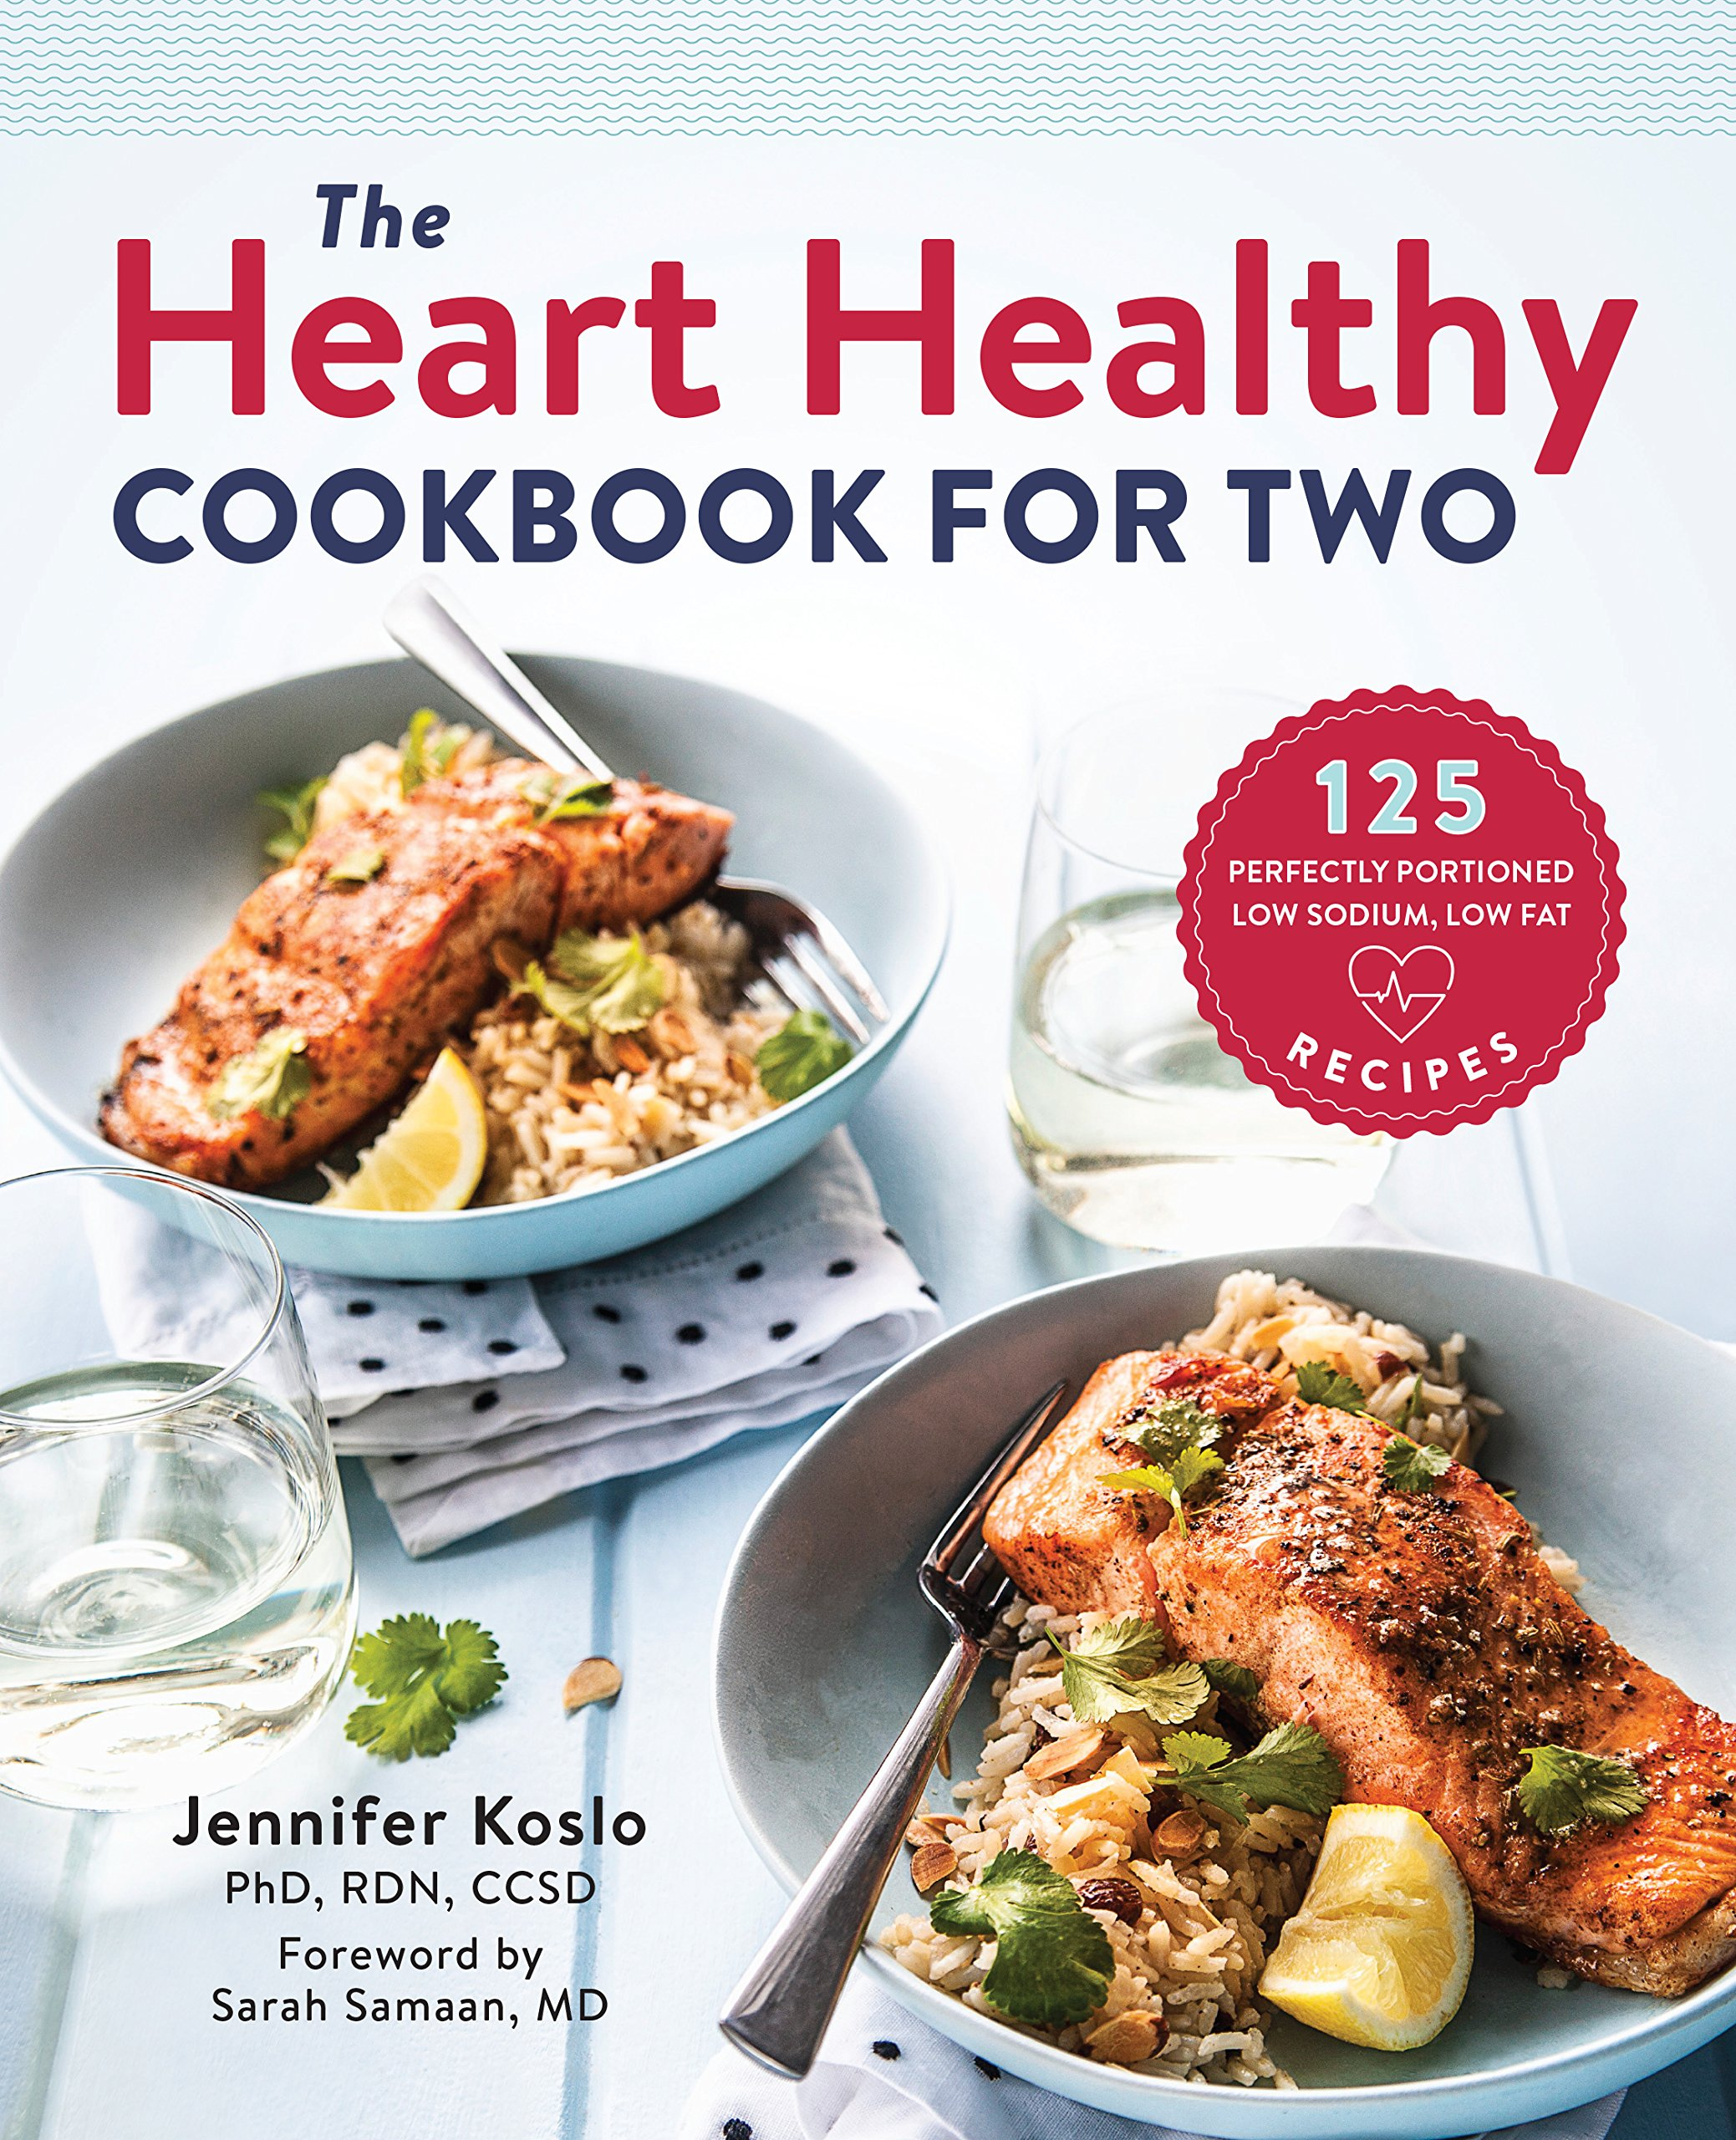 Heart Healthy Cookbook Two Perfectly product image